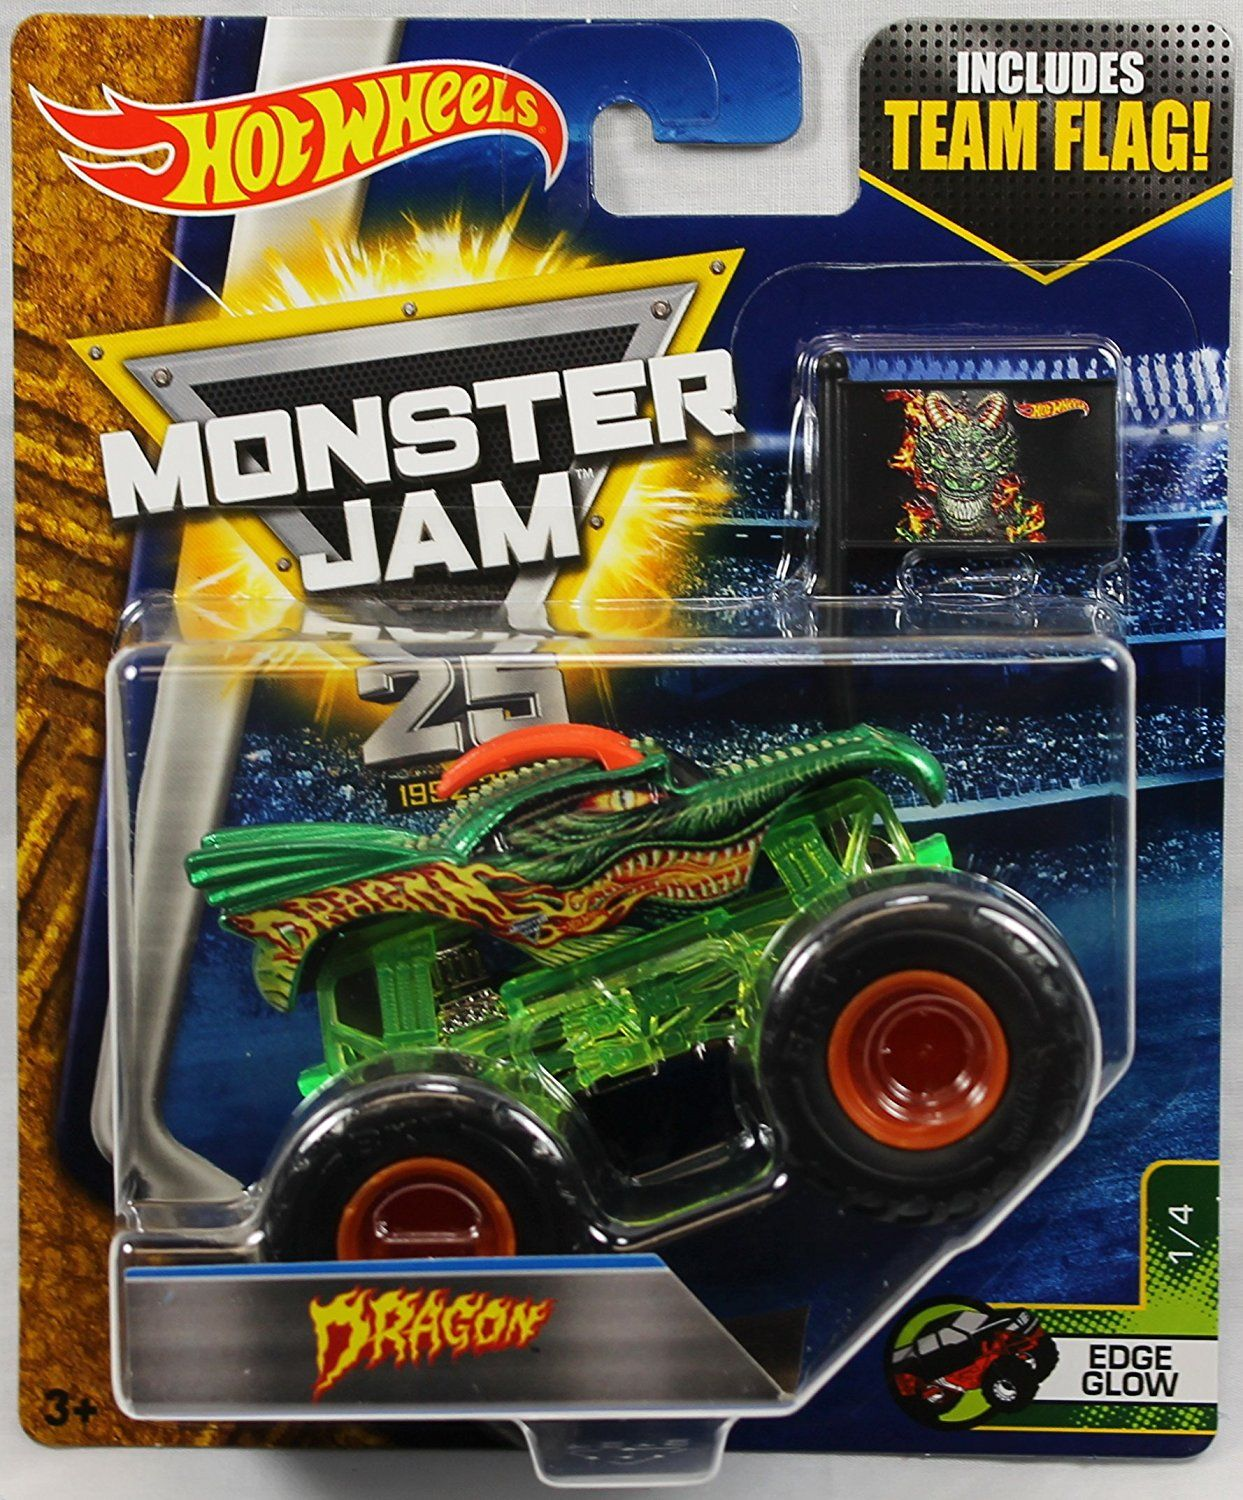 Amazon Com Hot Wheels Monster Jam 1 64 Scale Truck With Team Flag Dragon Toys Amp Games Hot Wheels Monster Jam Monster Jam Hot Wheels